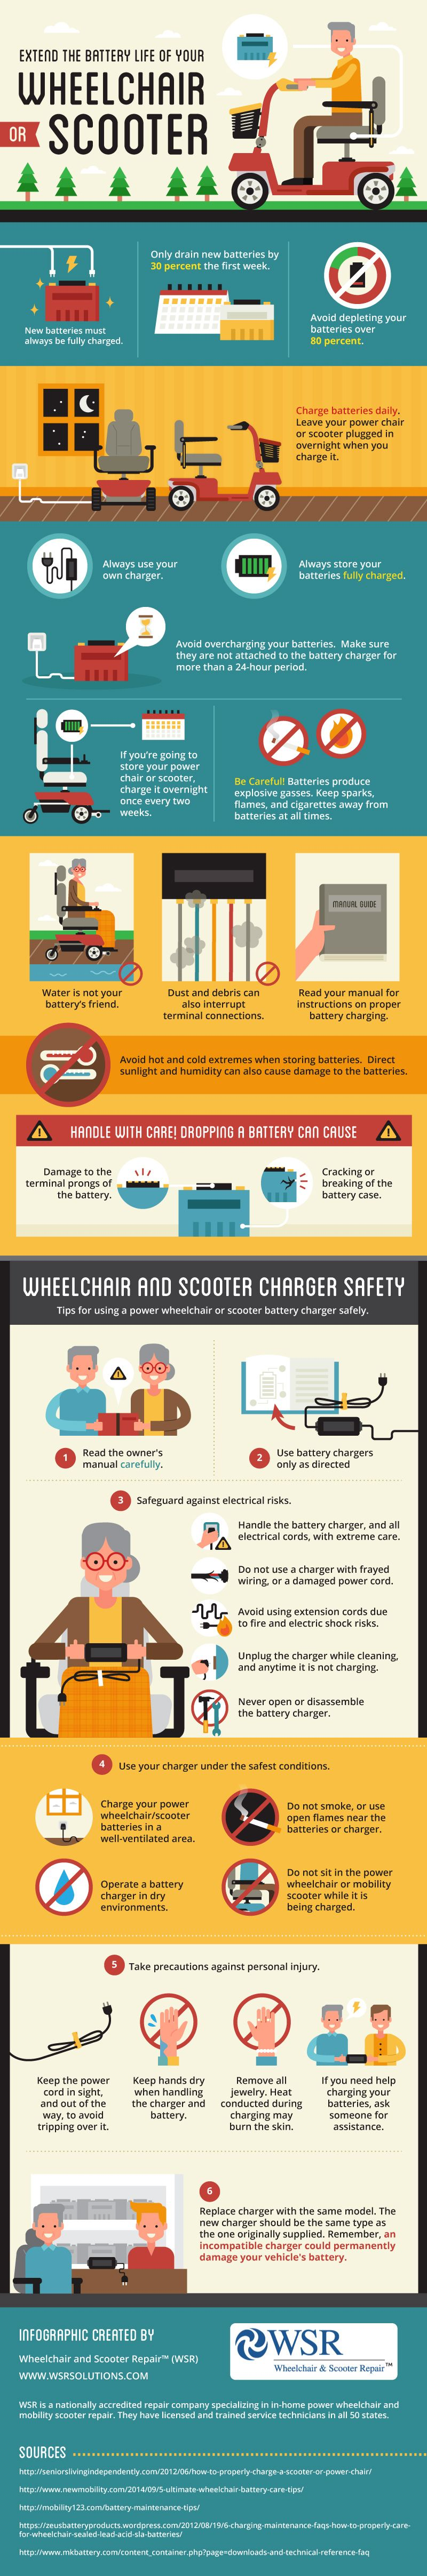 Extend the Battery Life of Your Wheelchair or Scooter #infographic